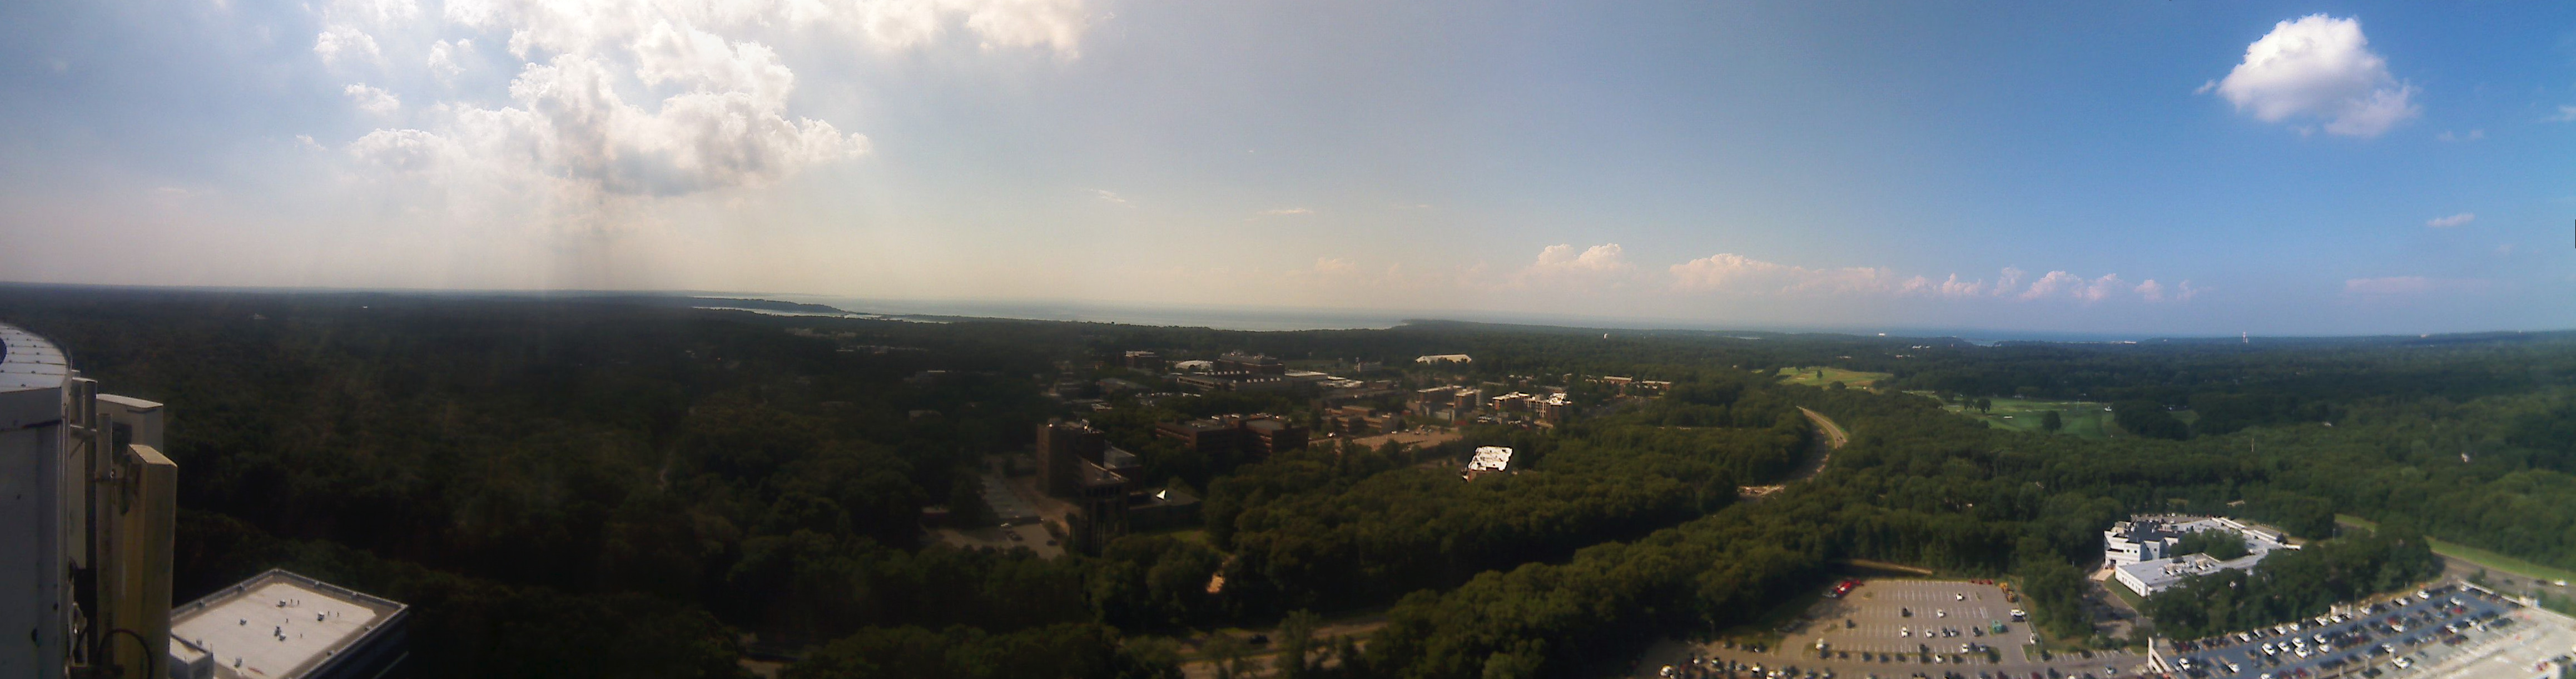 Health Sciences Center Panoramic, generated every 15 minutes